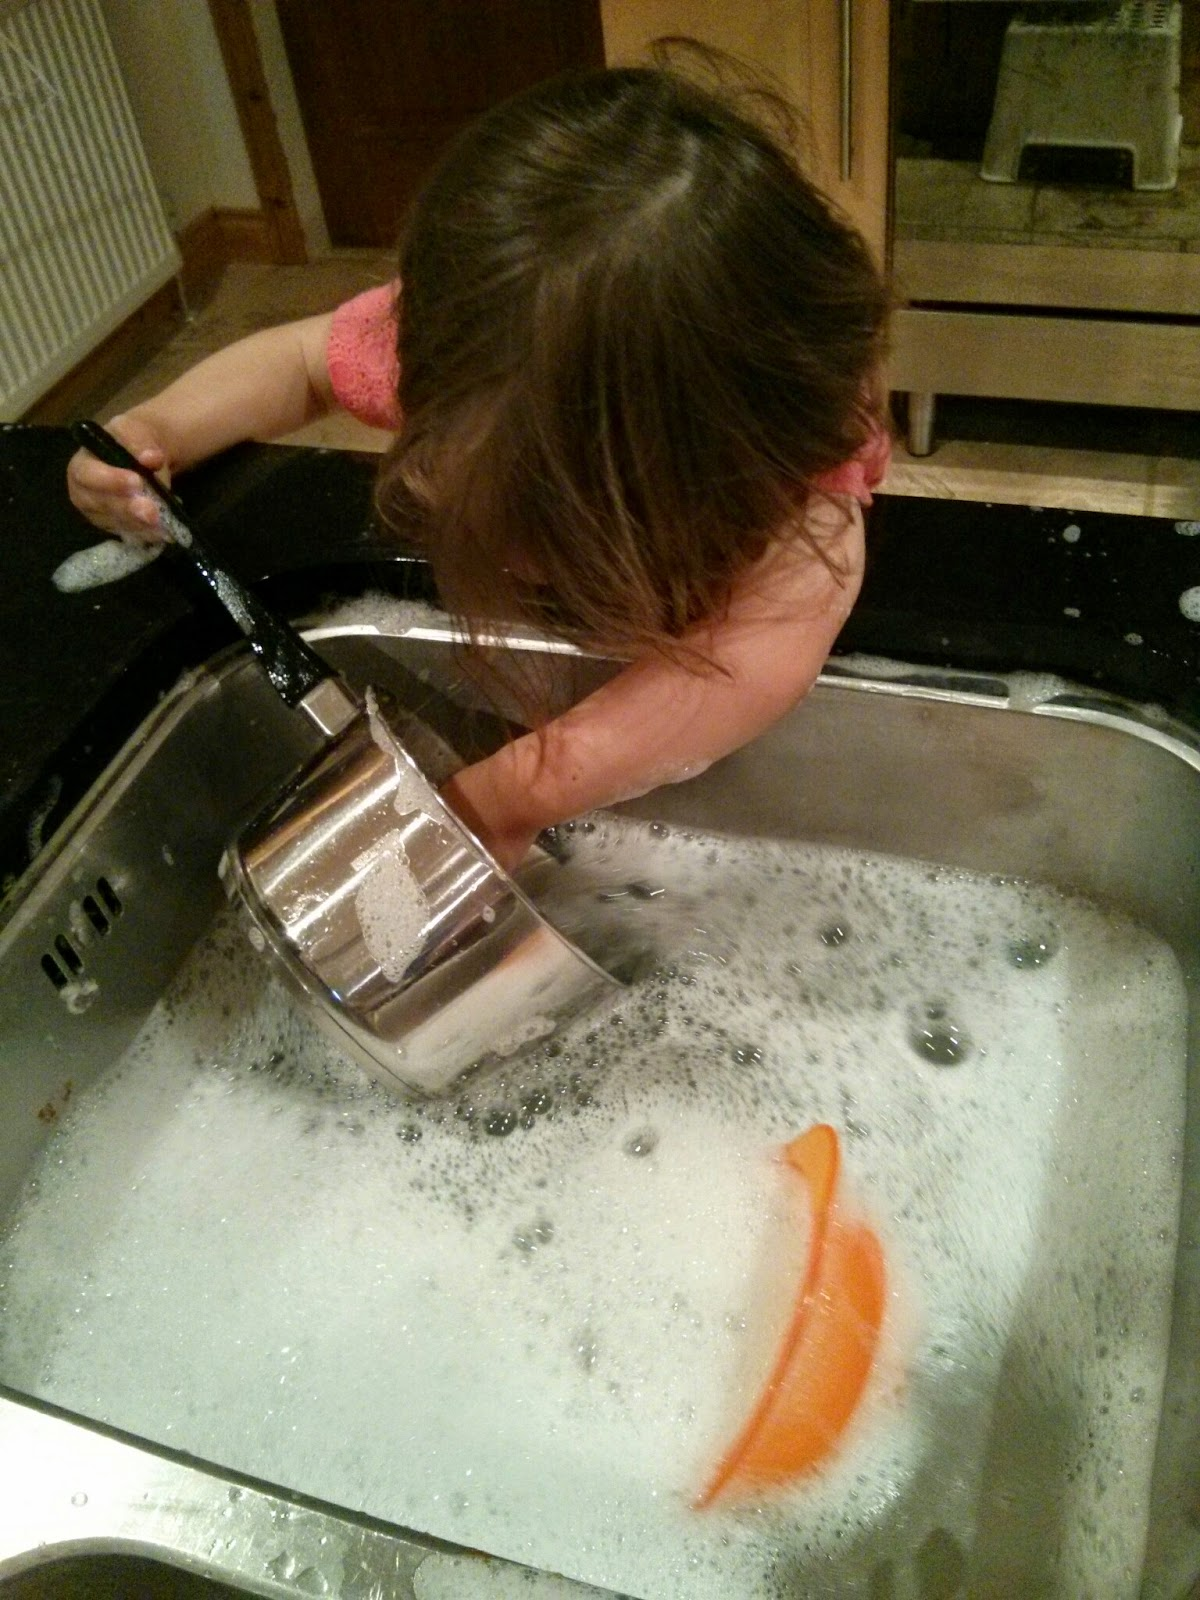 youngest washing up